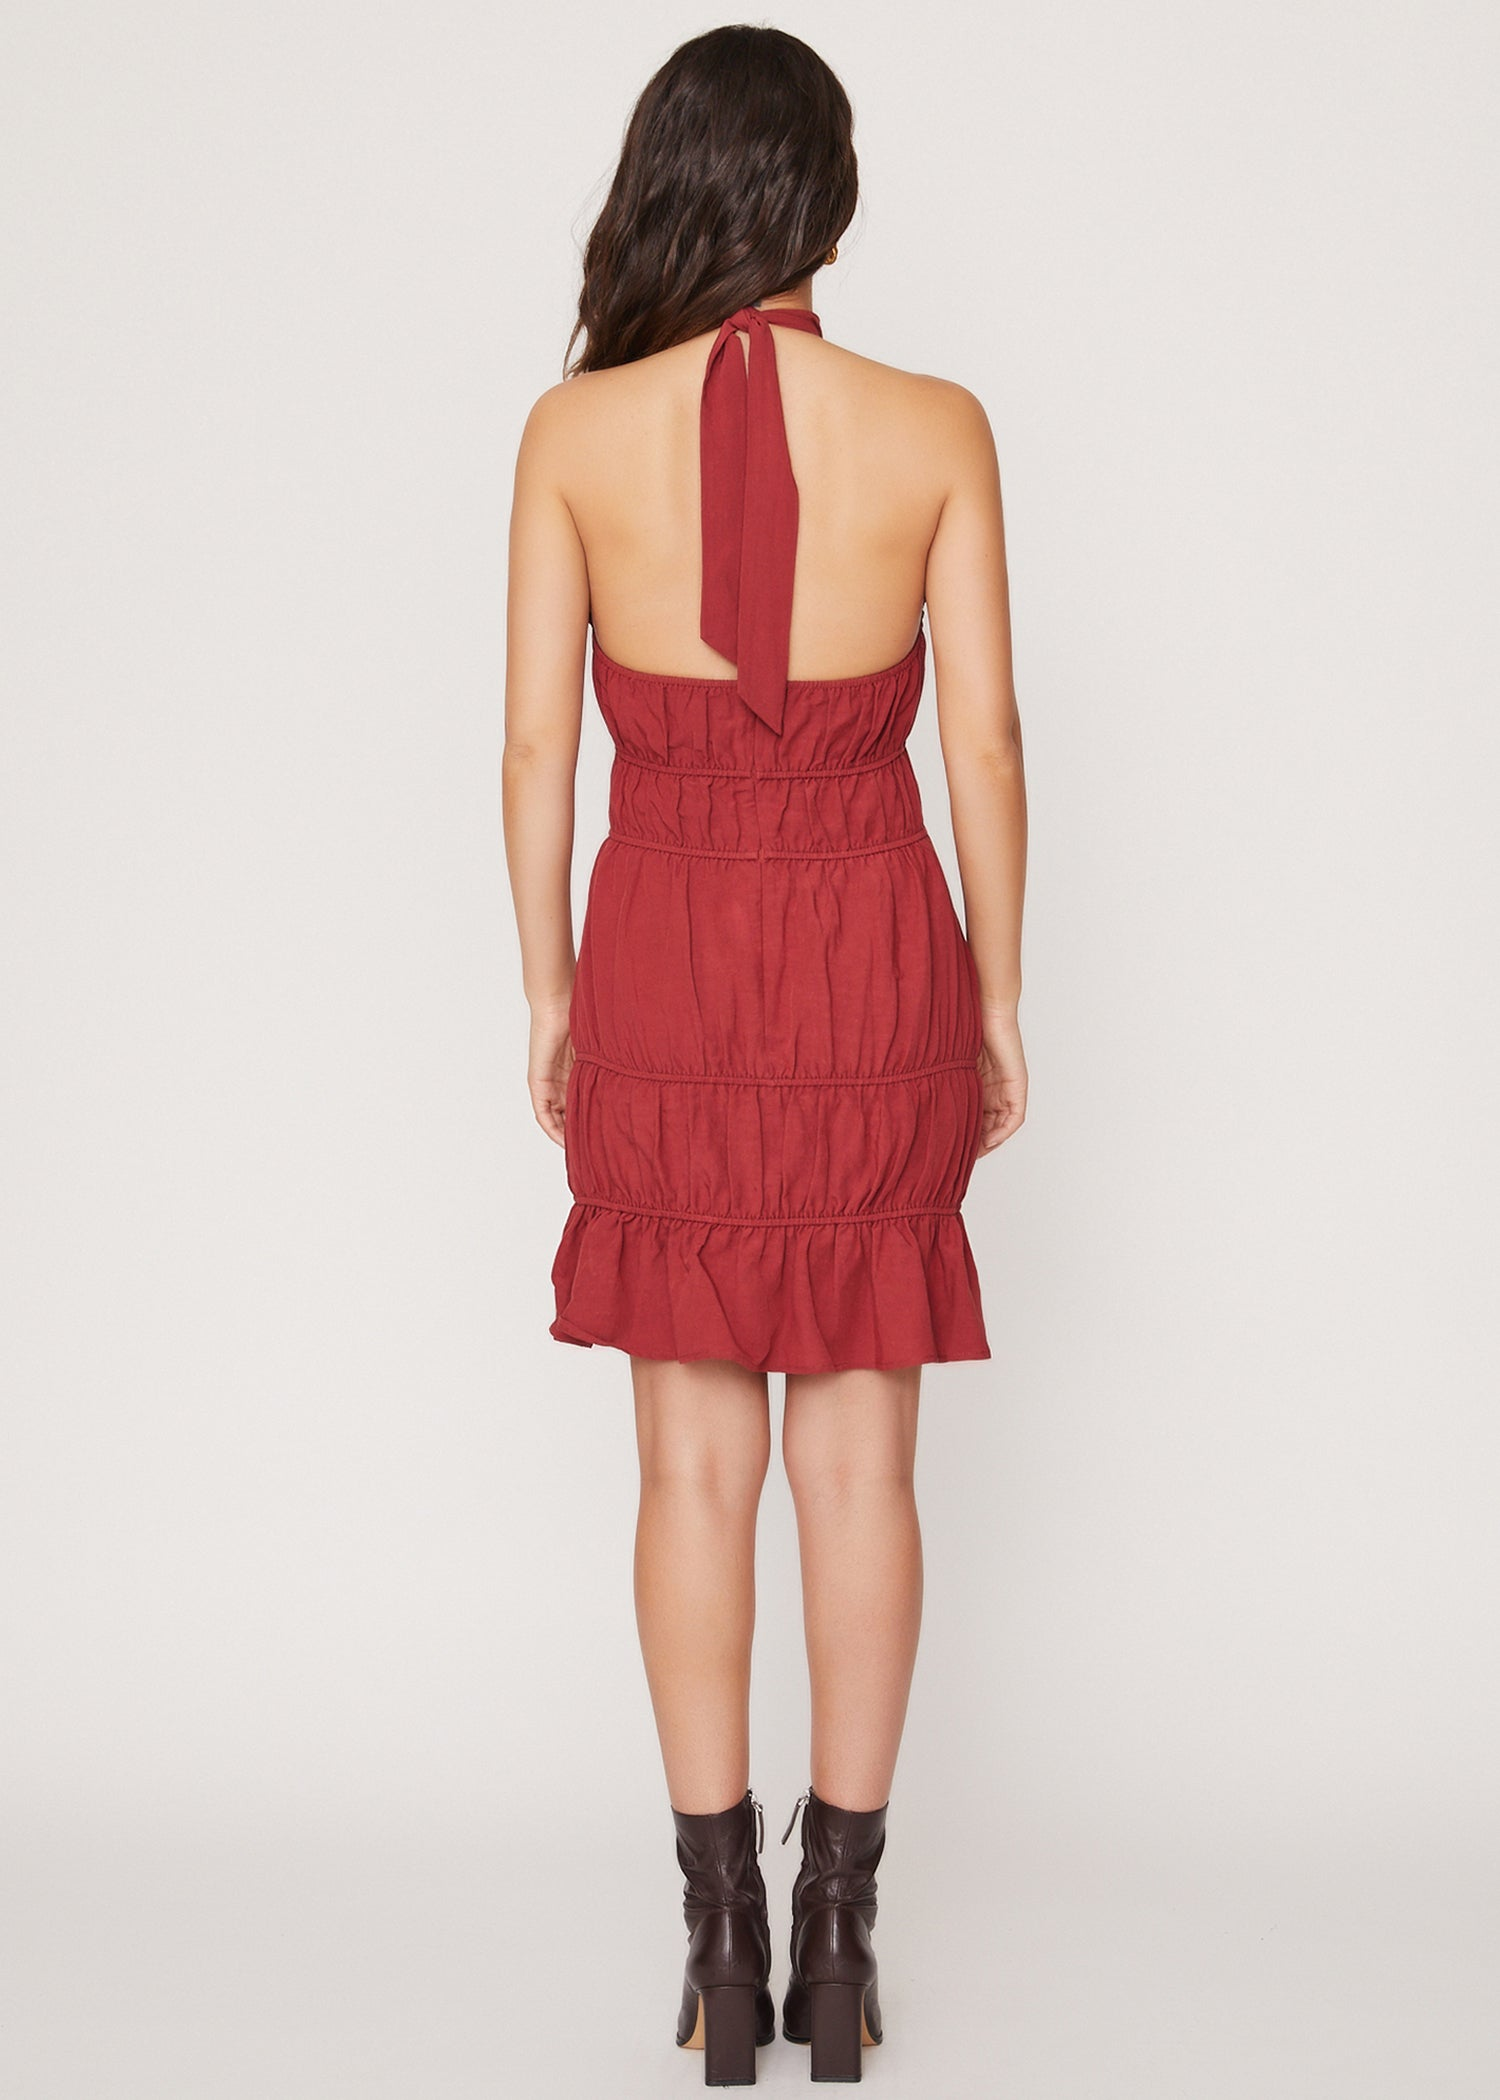 Brunch in Bordeaux Mini Dress